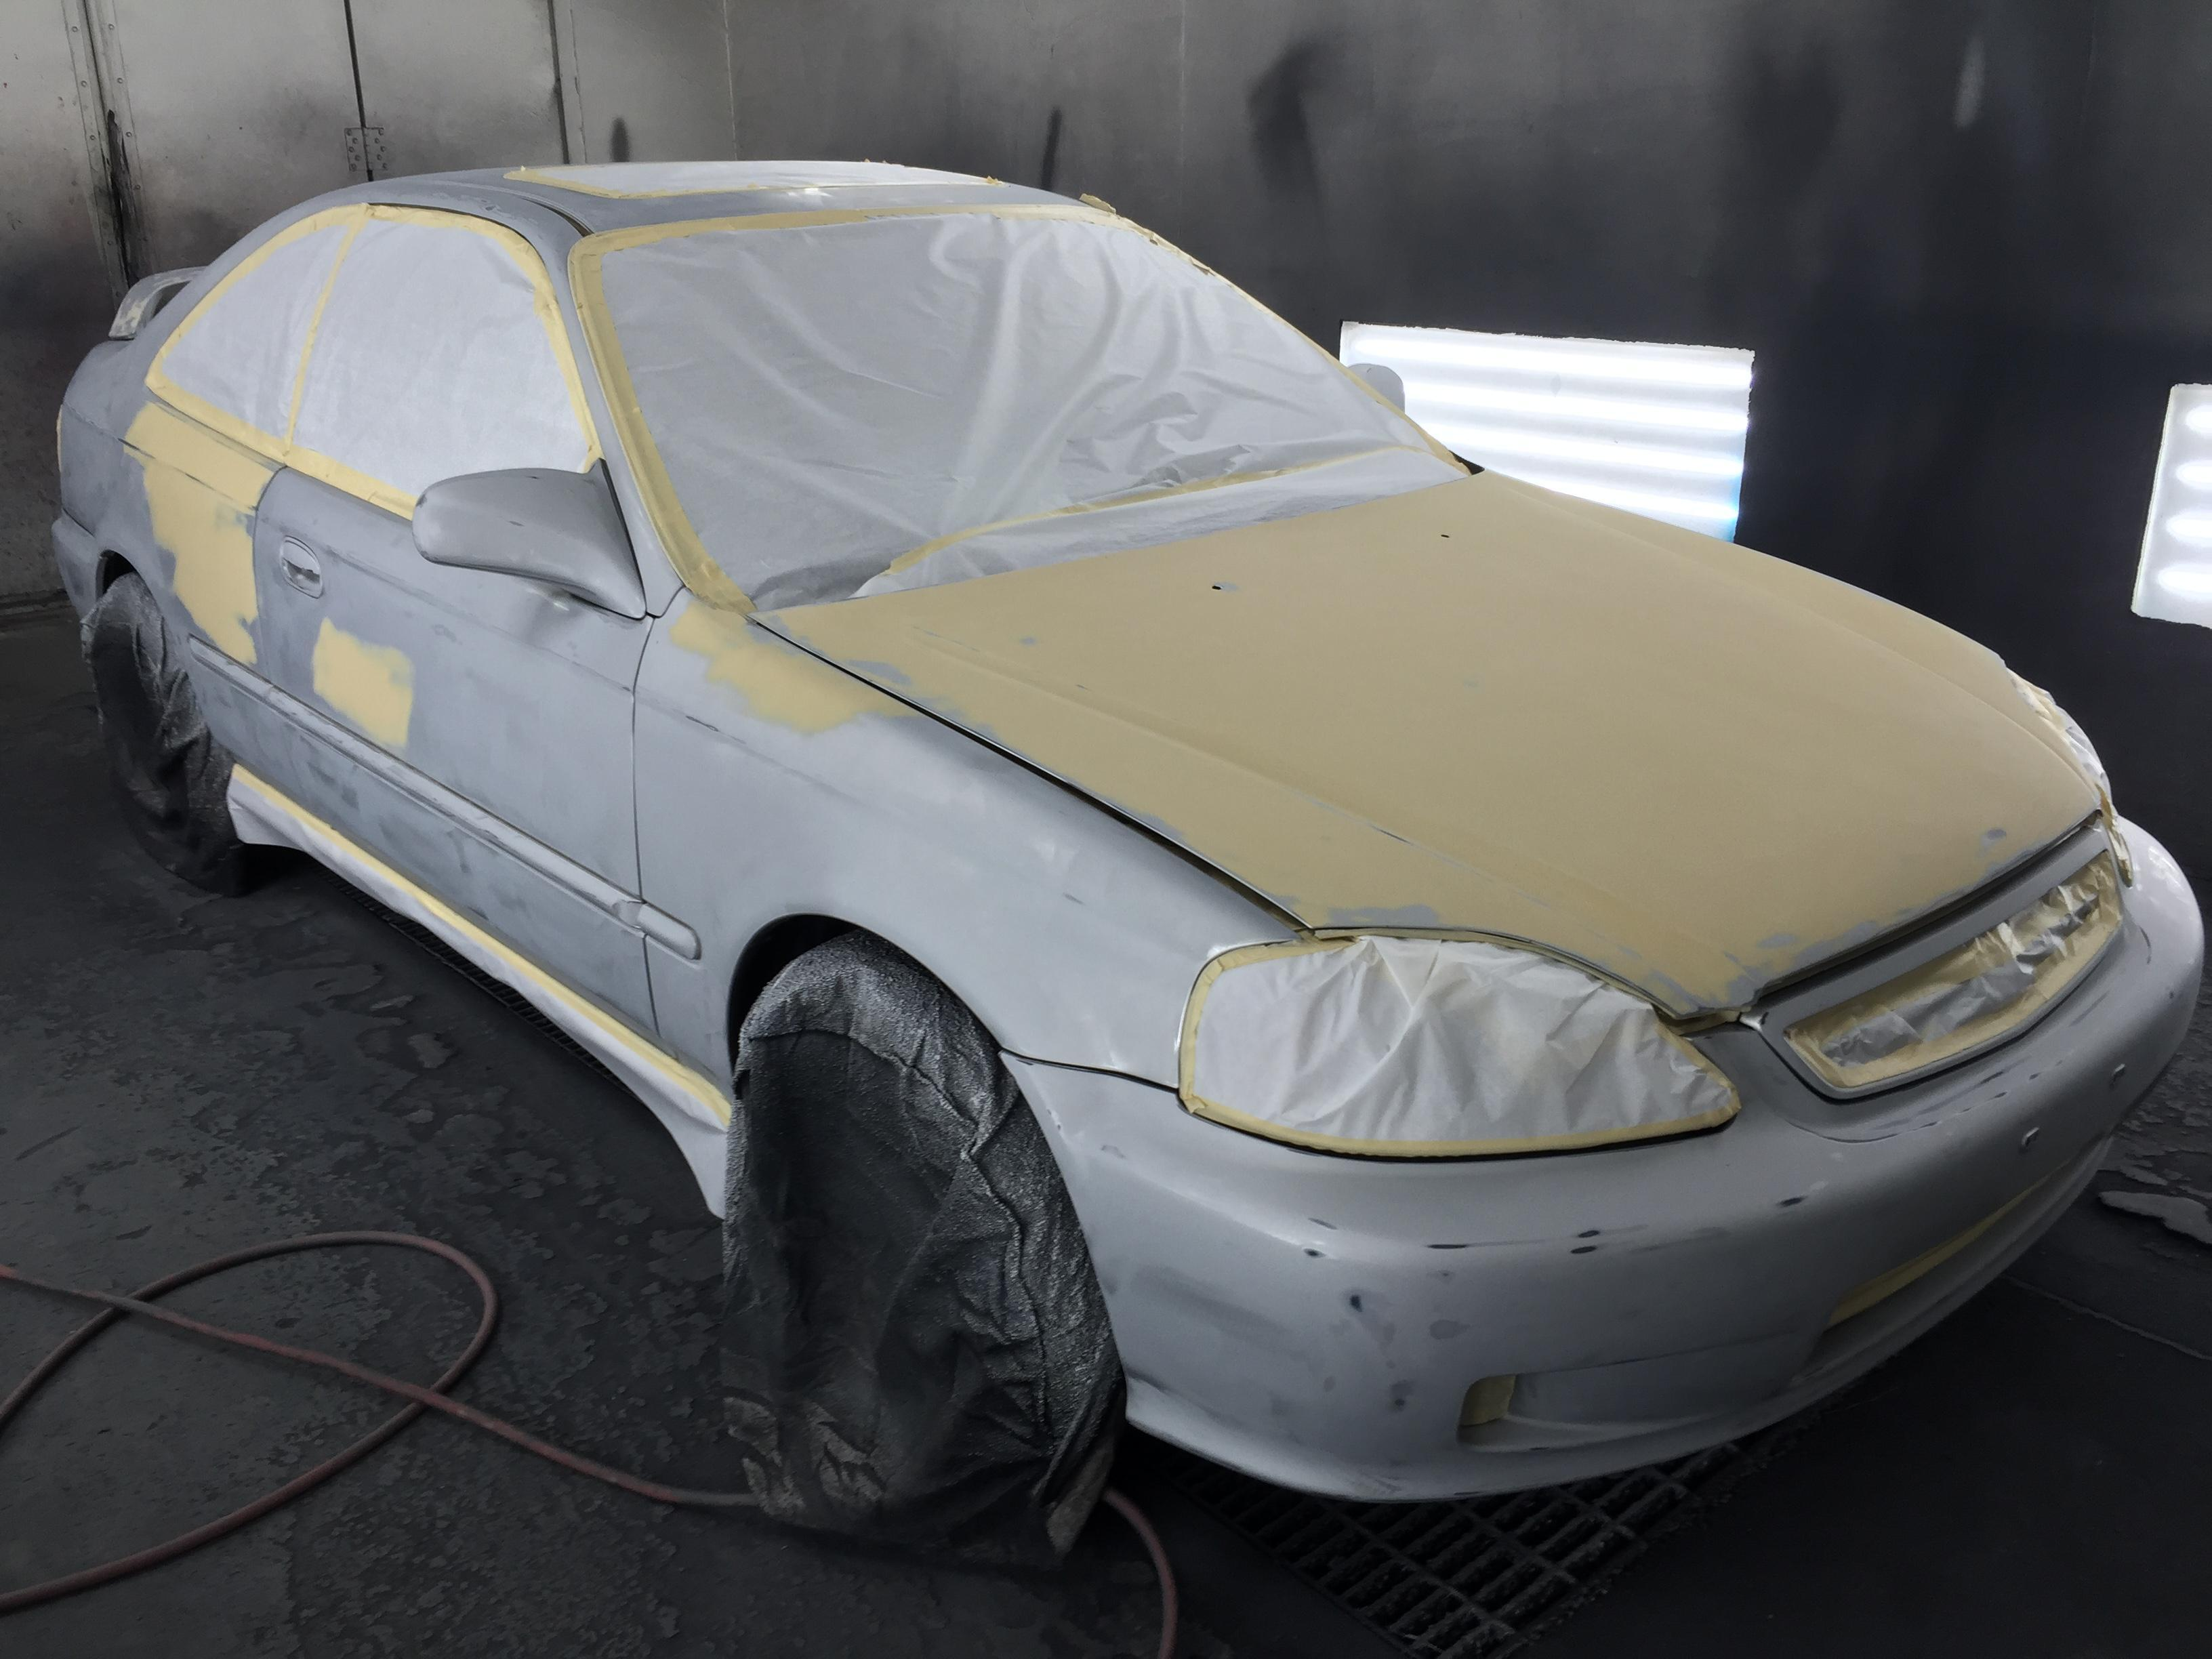 Maaco Collision Repair & Auto Painting image 44